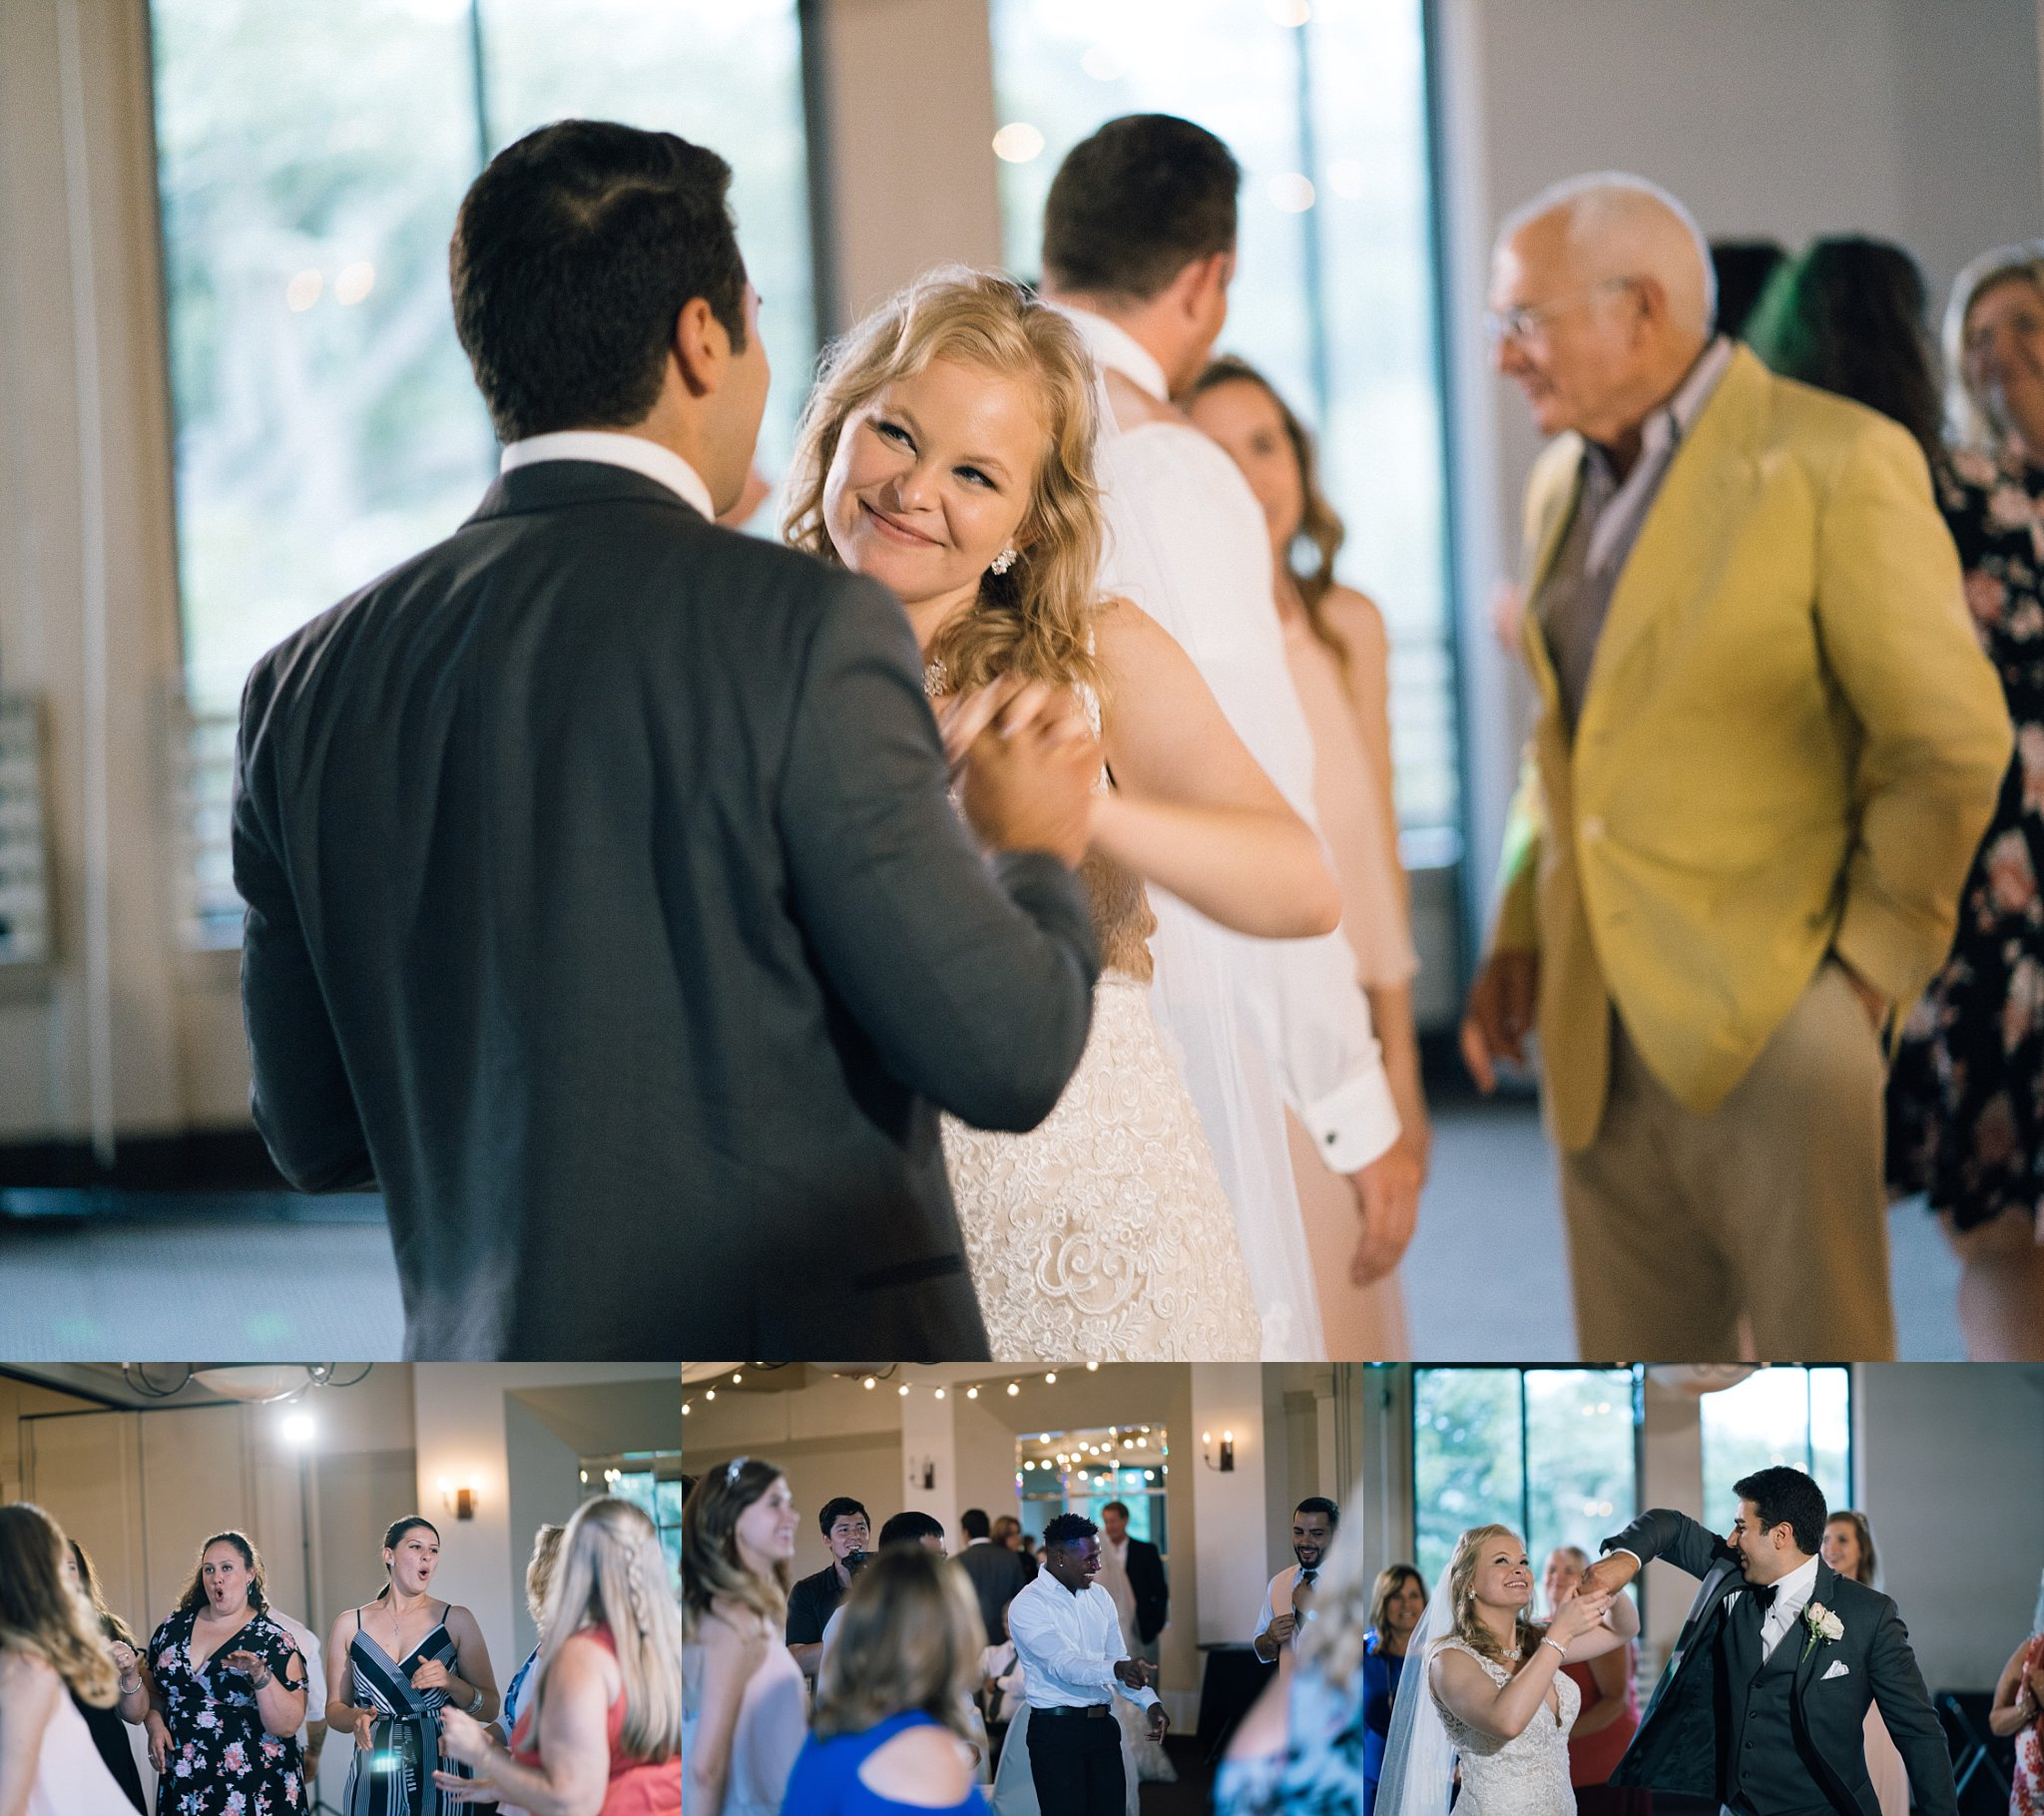 monterey-wedding-photographer-pebble-beach-church-in-the-forest-wedding-bride-groom-morgan-anthony_0052.jpg